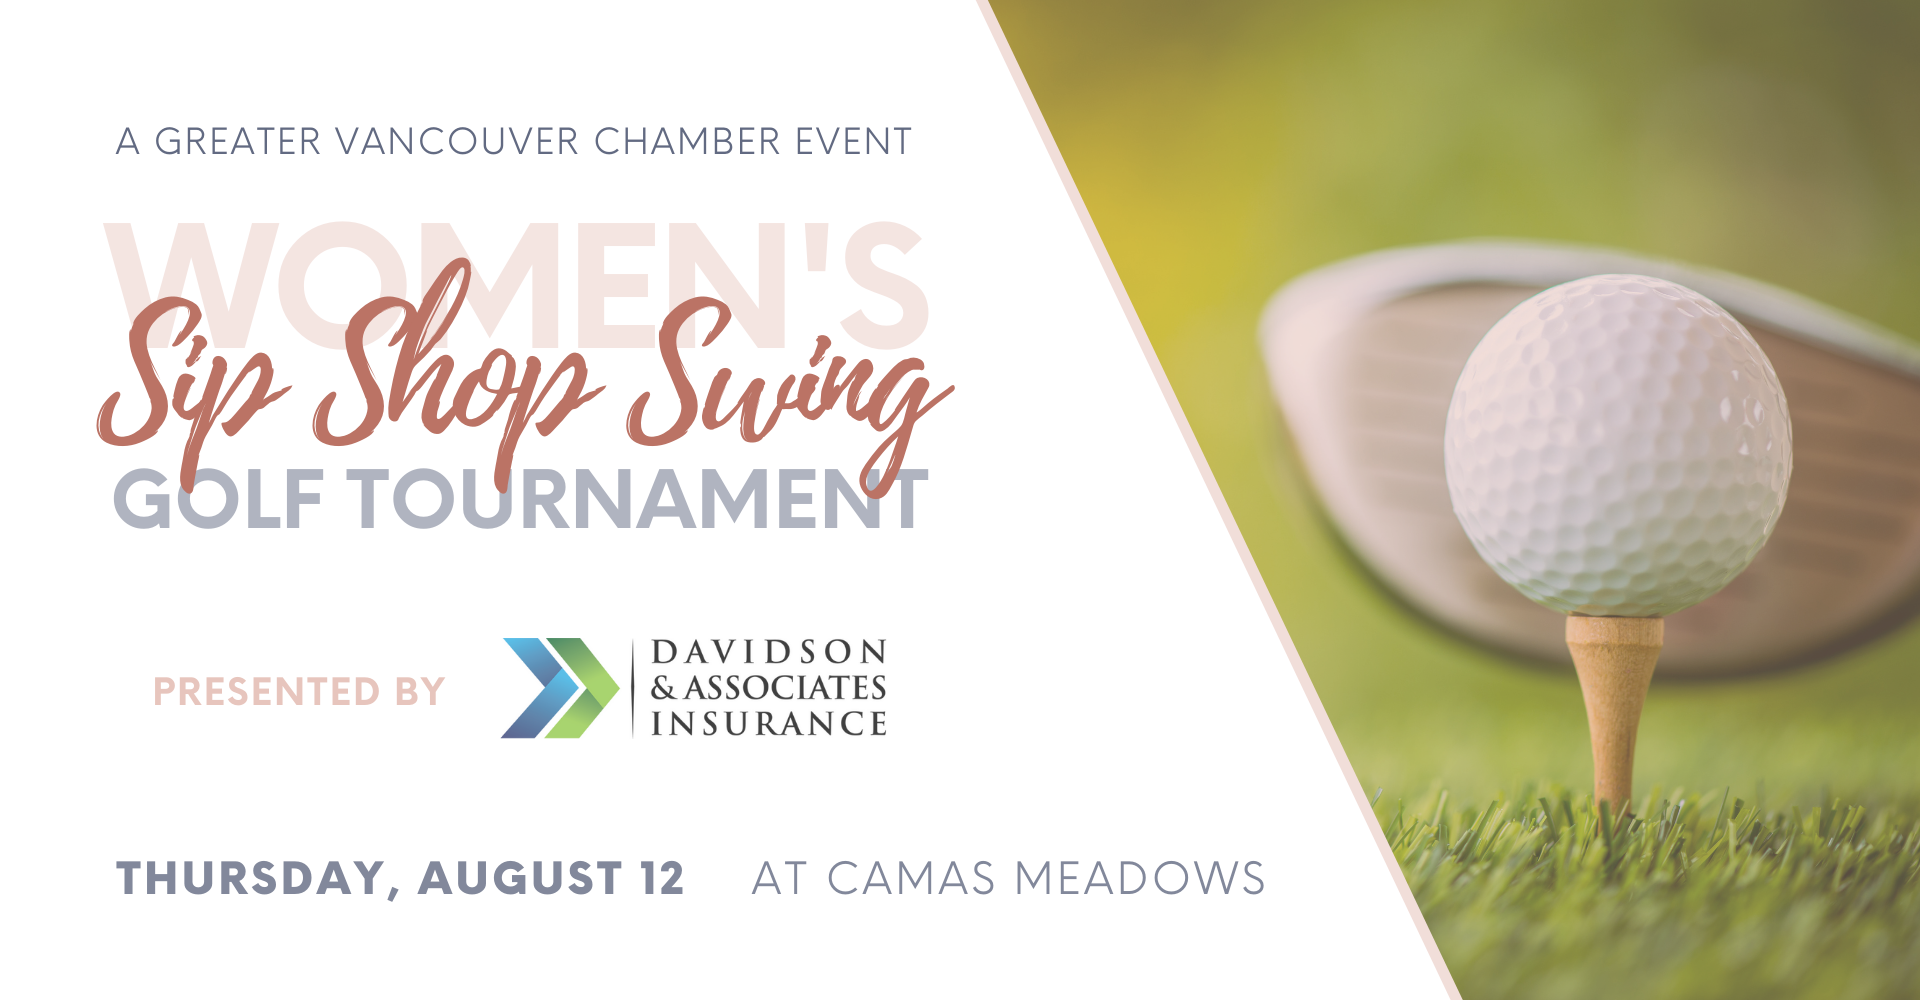 Sip shop swing 6th sixth annual women's golf tournament august 12 2021 camas meadows golf course greater vancouver chamber